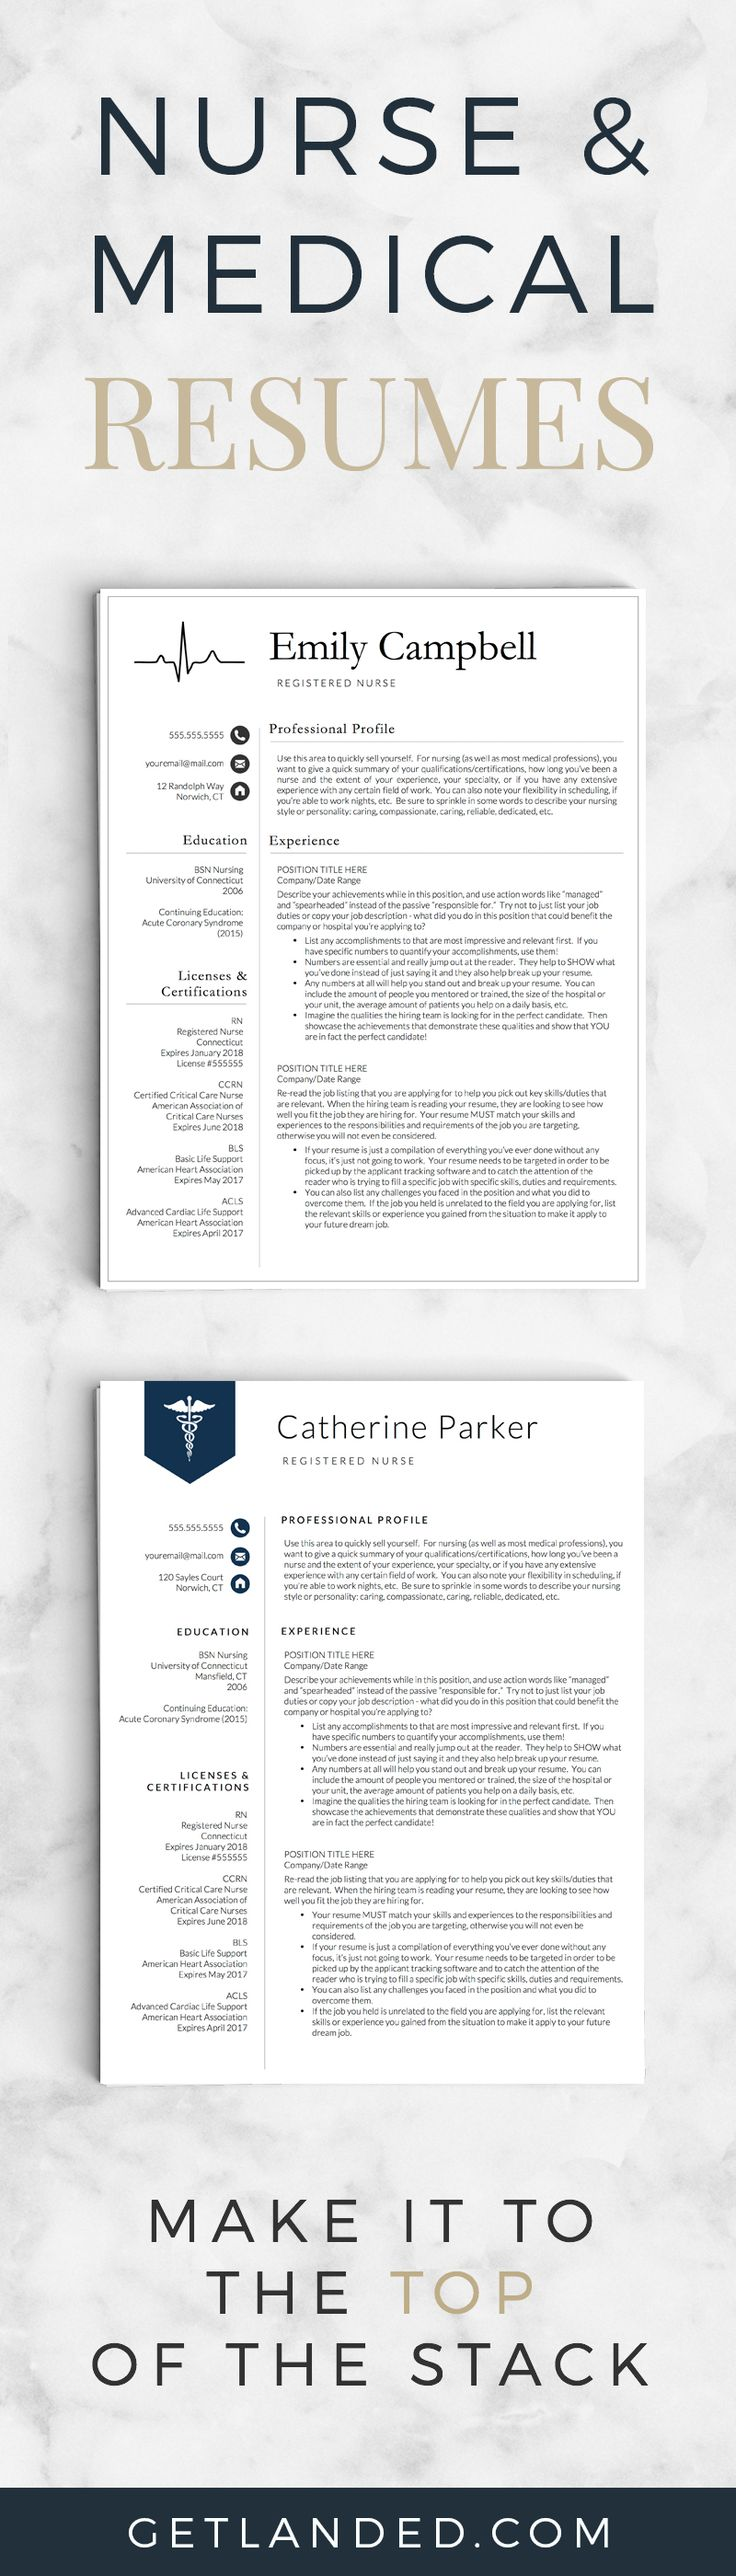 Nurse resume templates | Medical resumes | Resume templates specifically designed for the nursing profession!